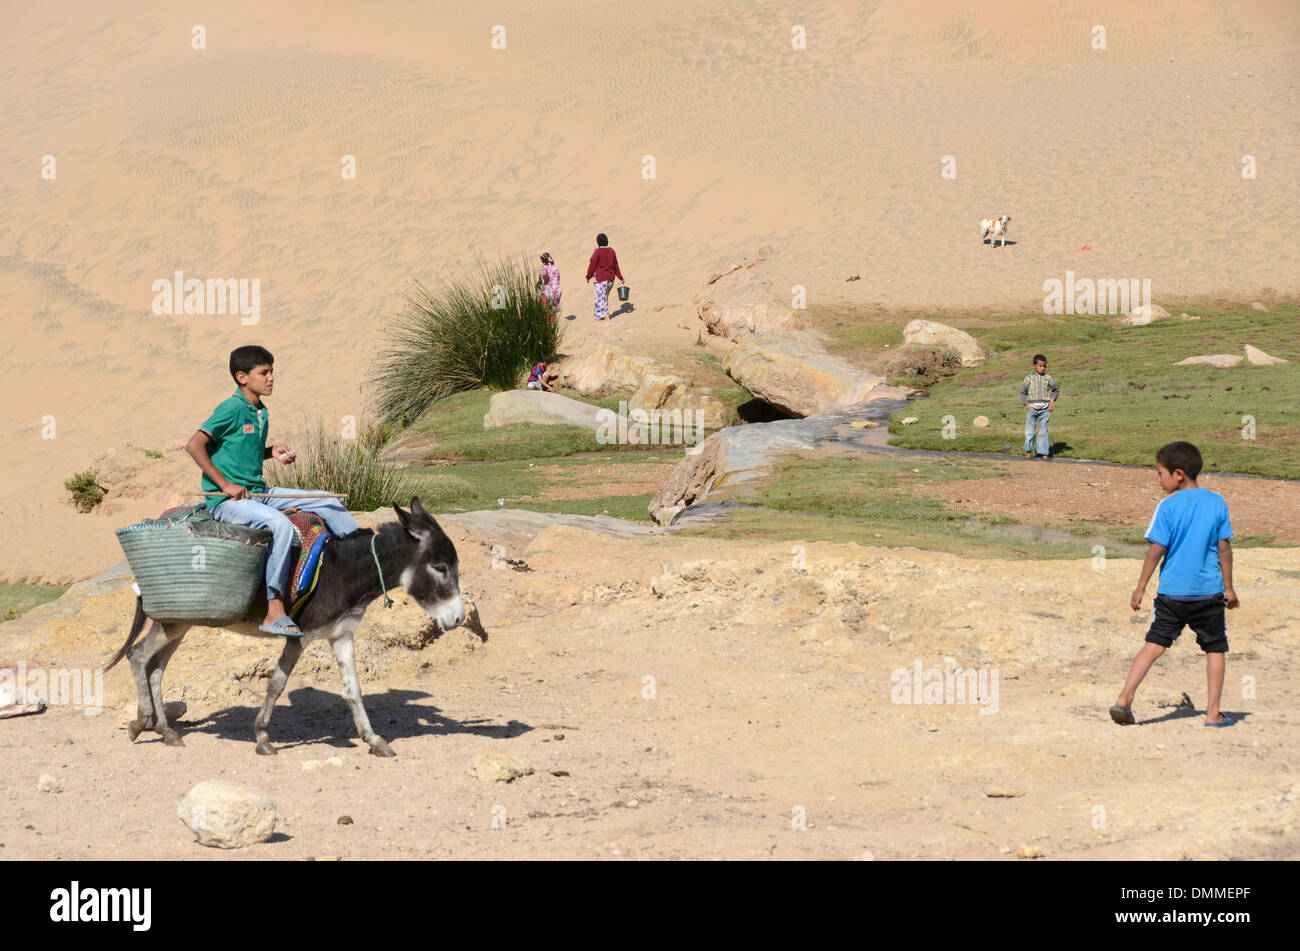 Berber boy riding a donkey a small valley near a Berber village on the coast south of Essaouira Morocco Stock Photo